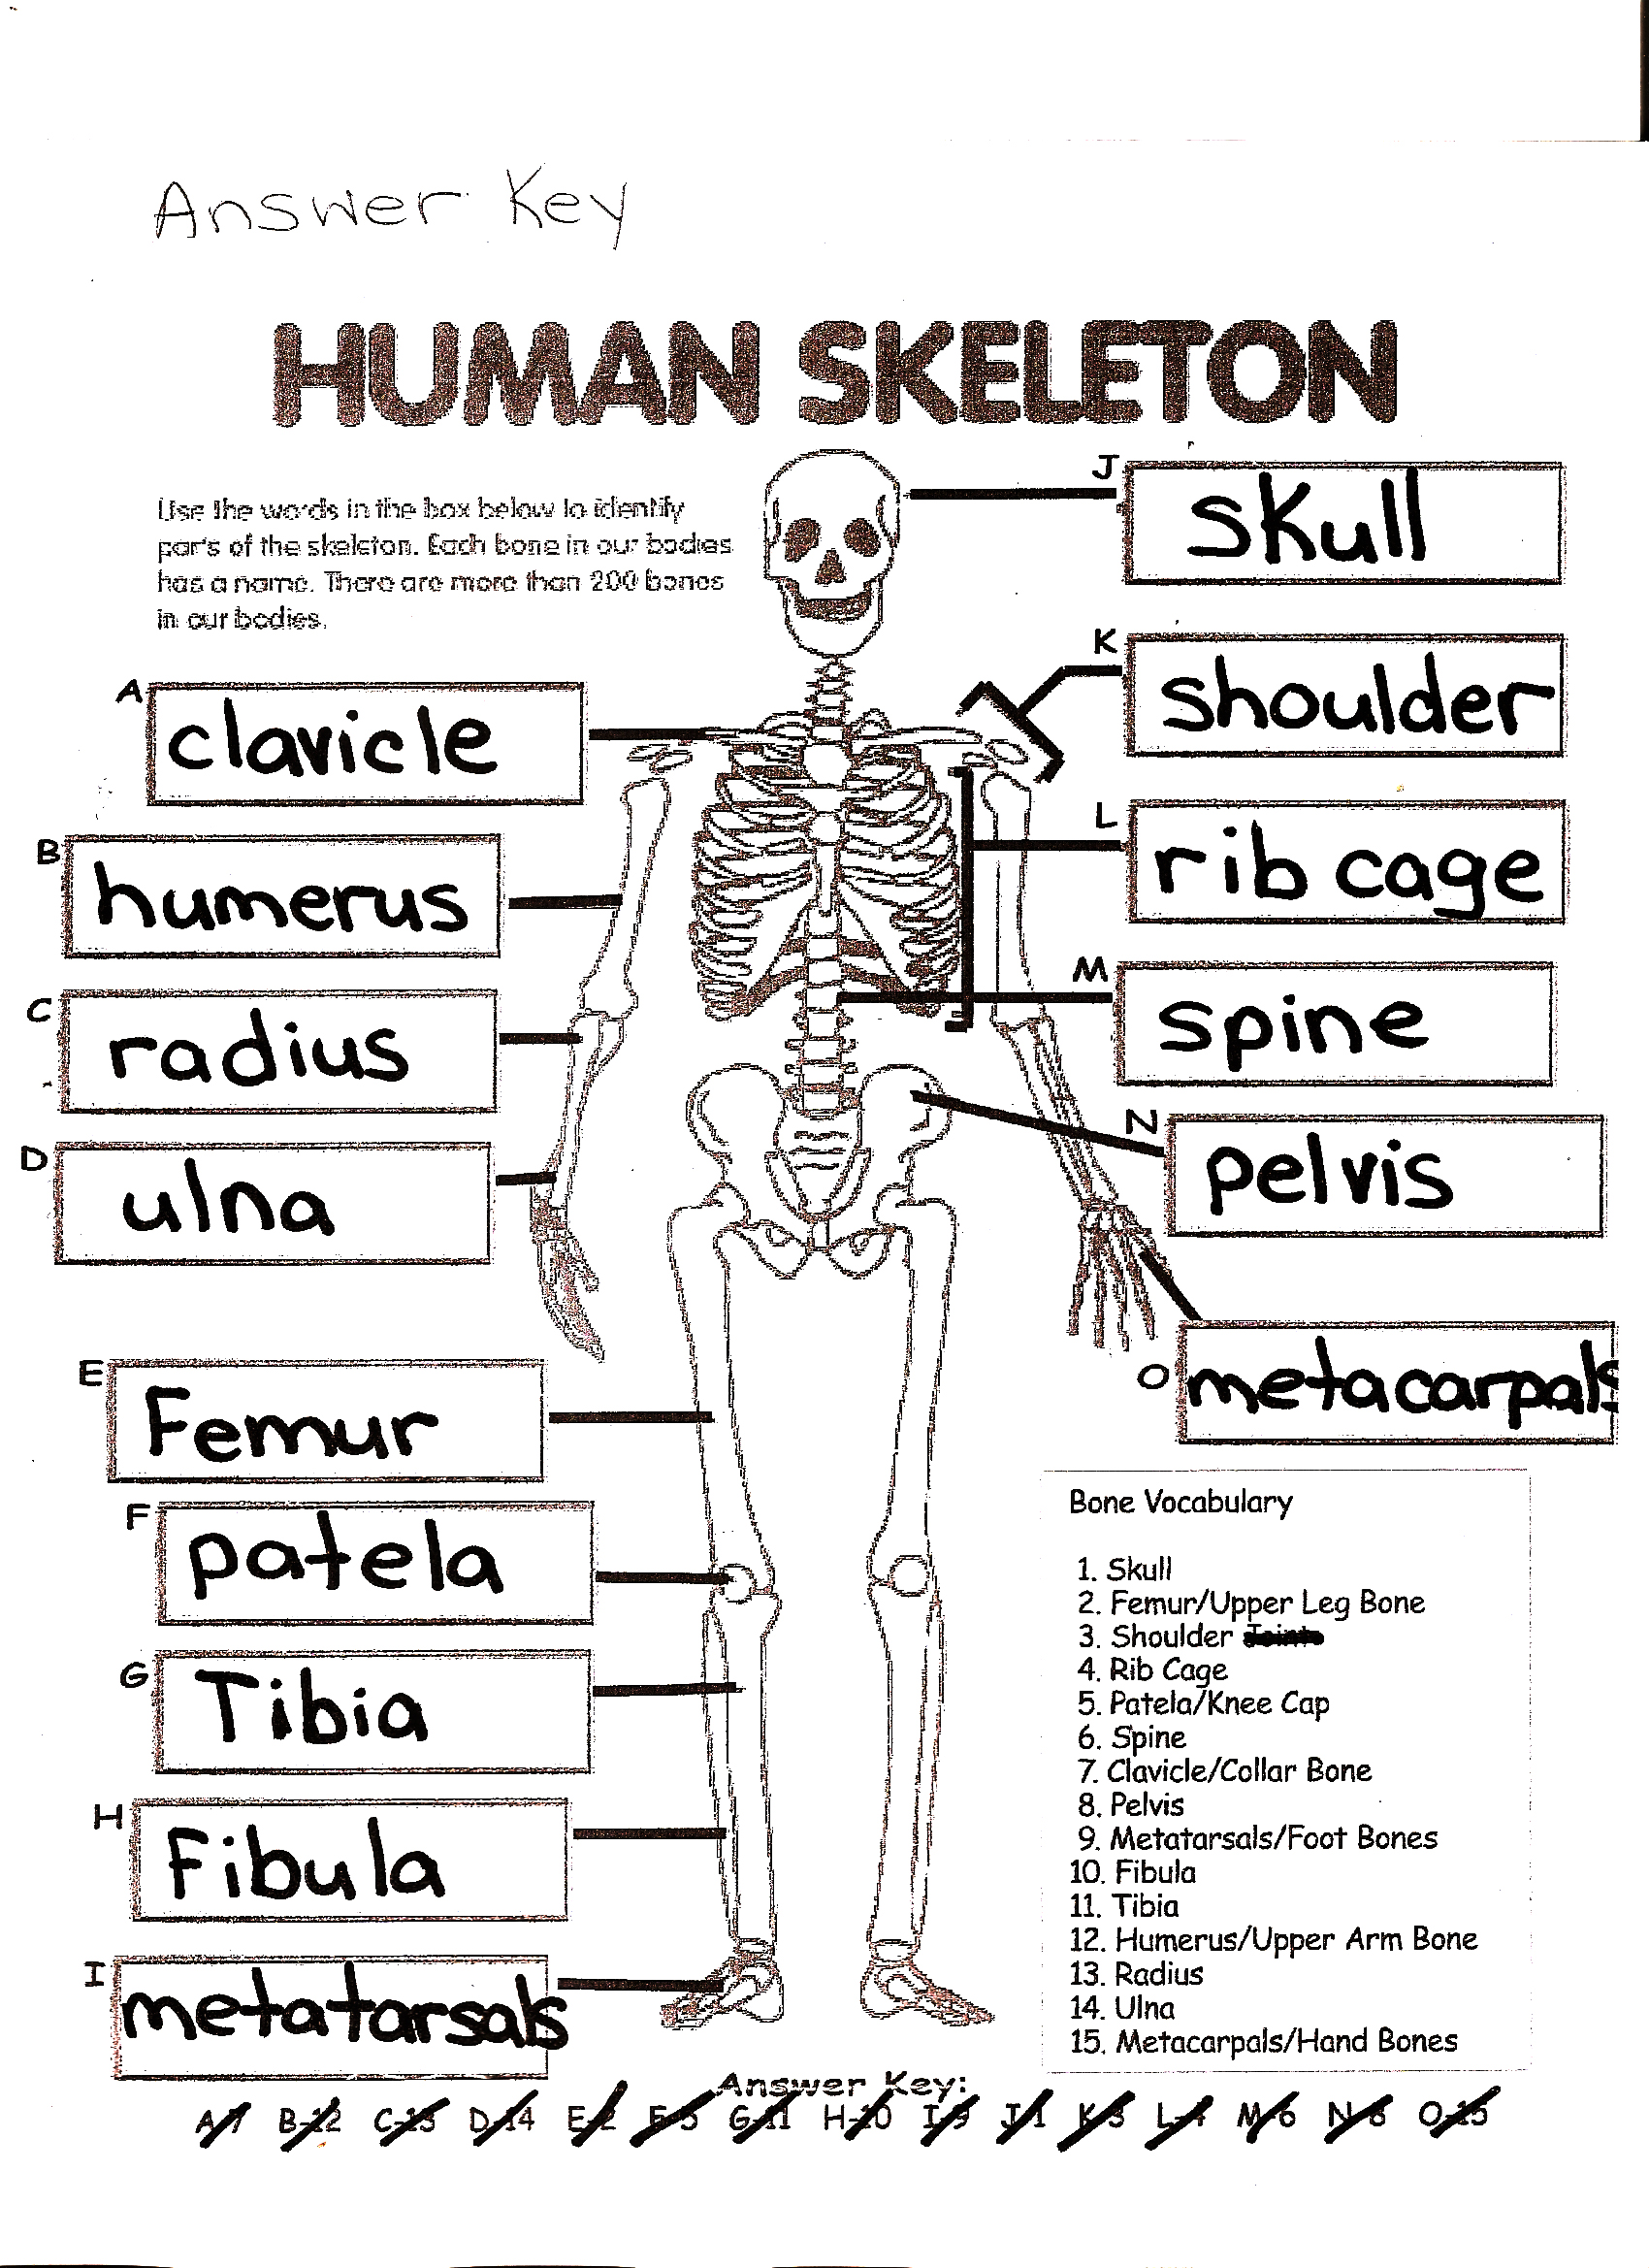 Printables The Skeletal System Worksheet Answer Key the skeletal system worksheet answers abitlikethis bio chapter 29 mckenna mrs home page